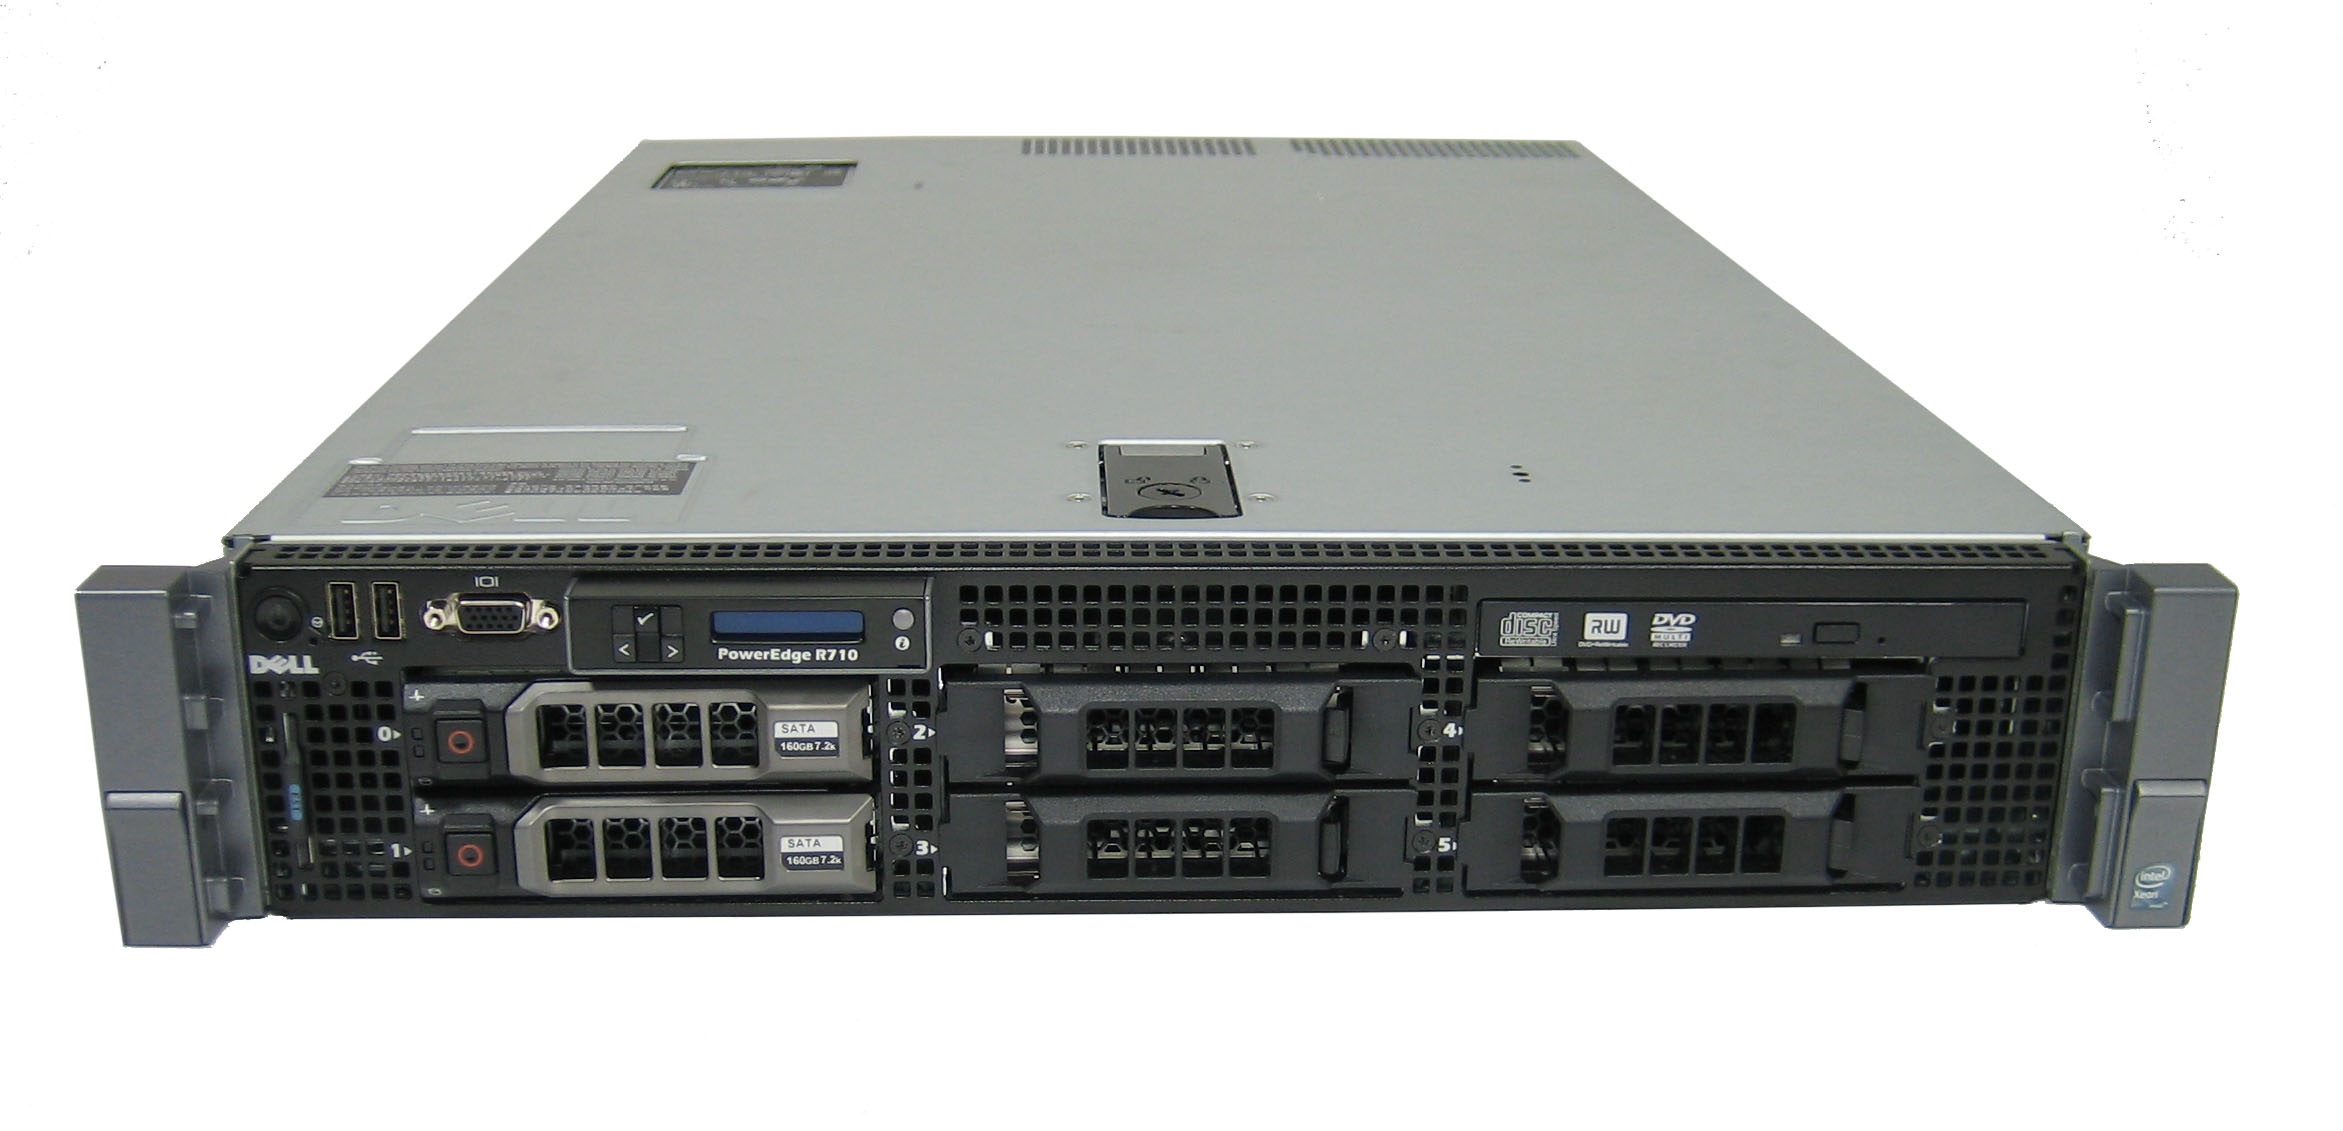 SERVER DELL POWEREDGE R710 SIX CORE X5670 2.93GHZ CŨ